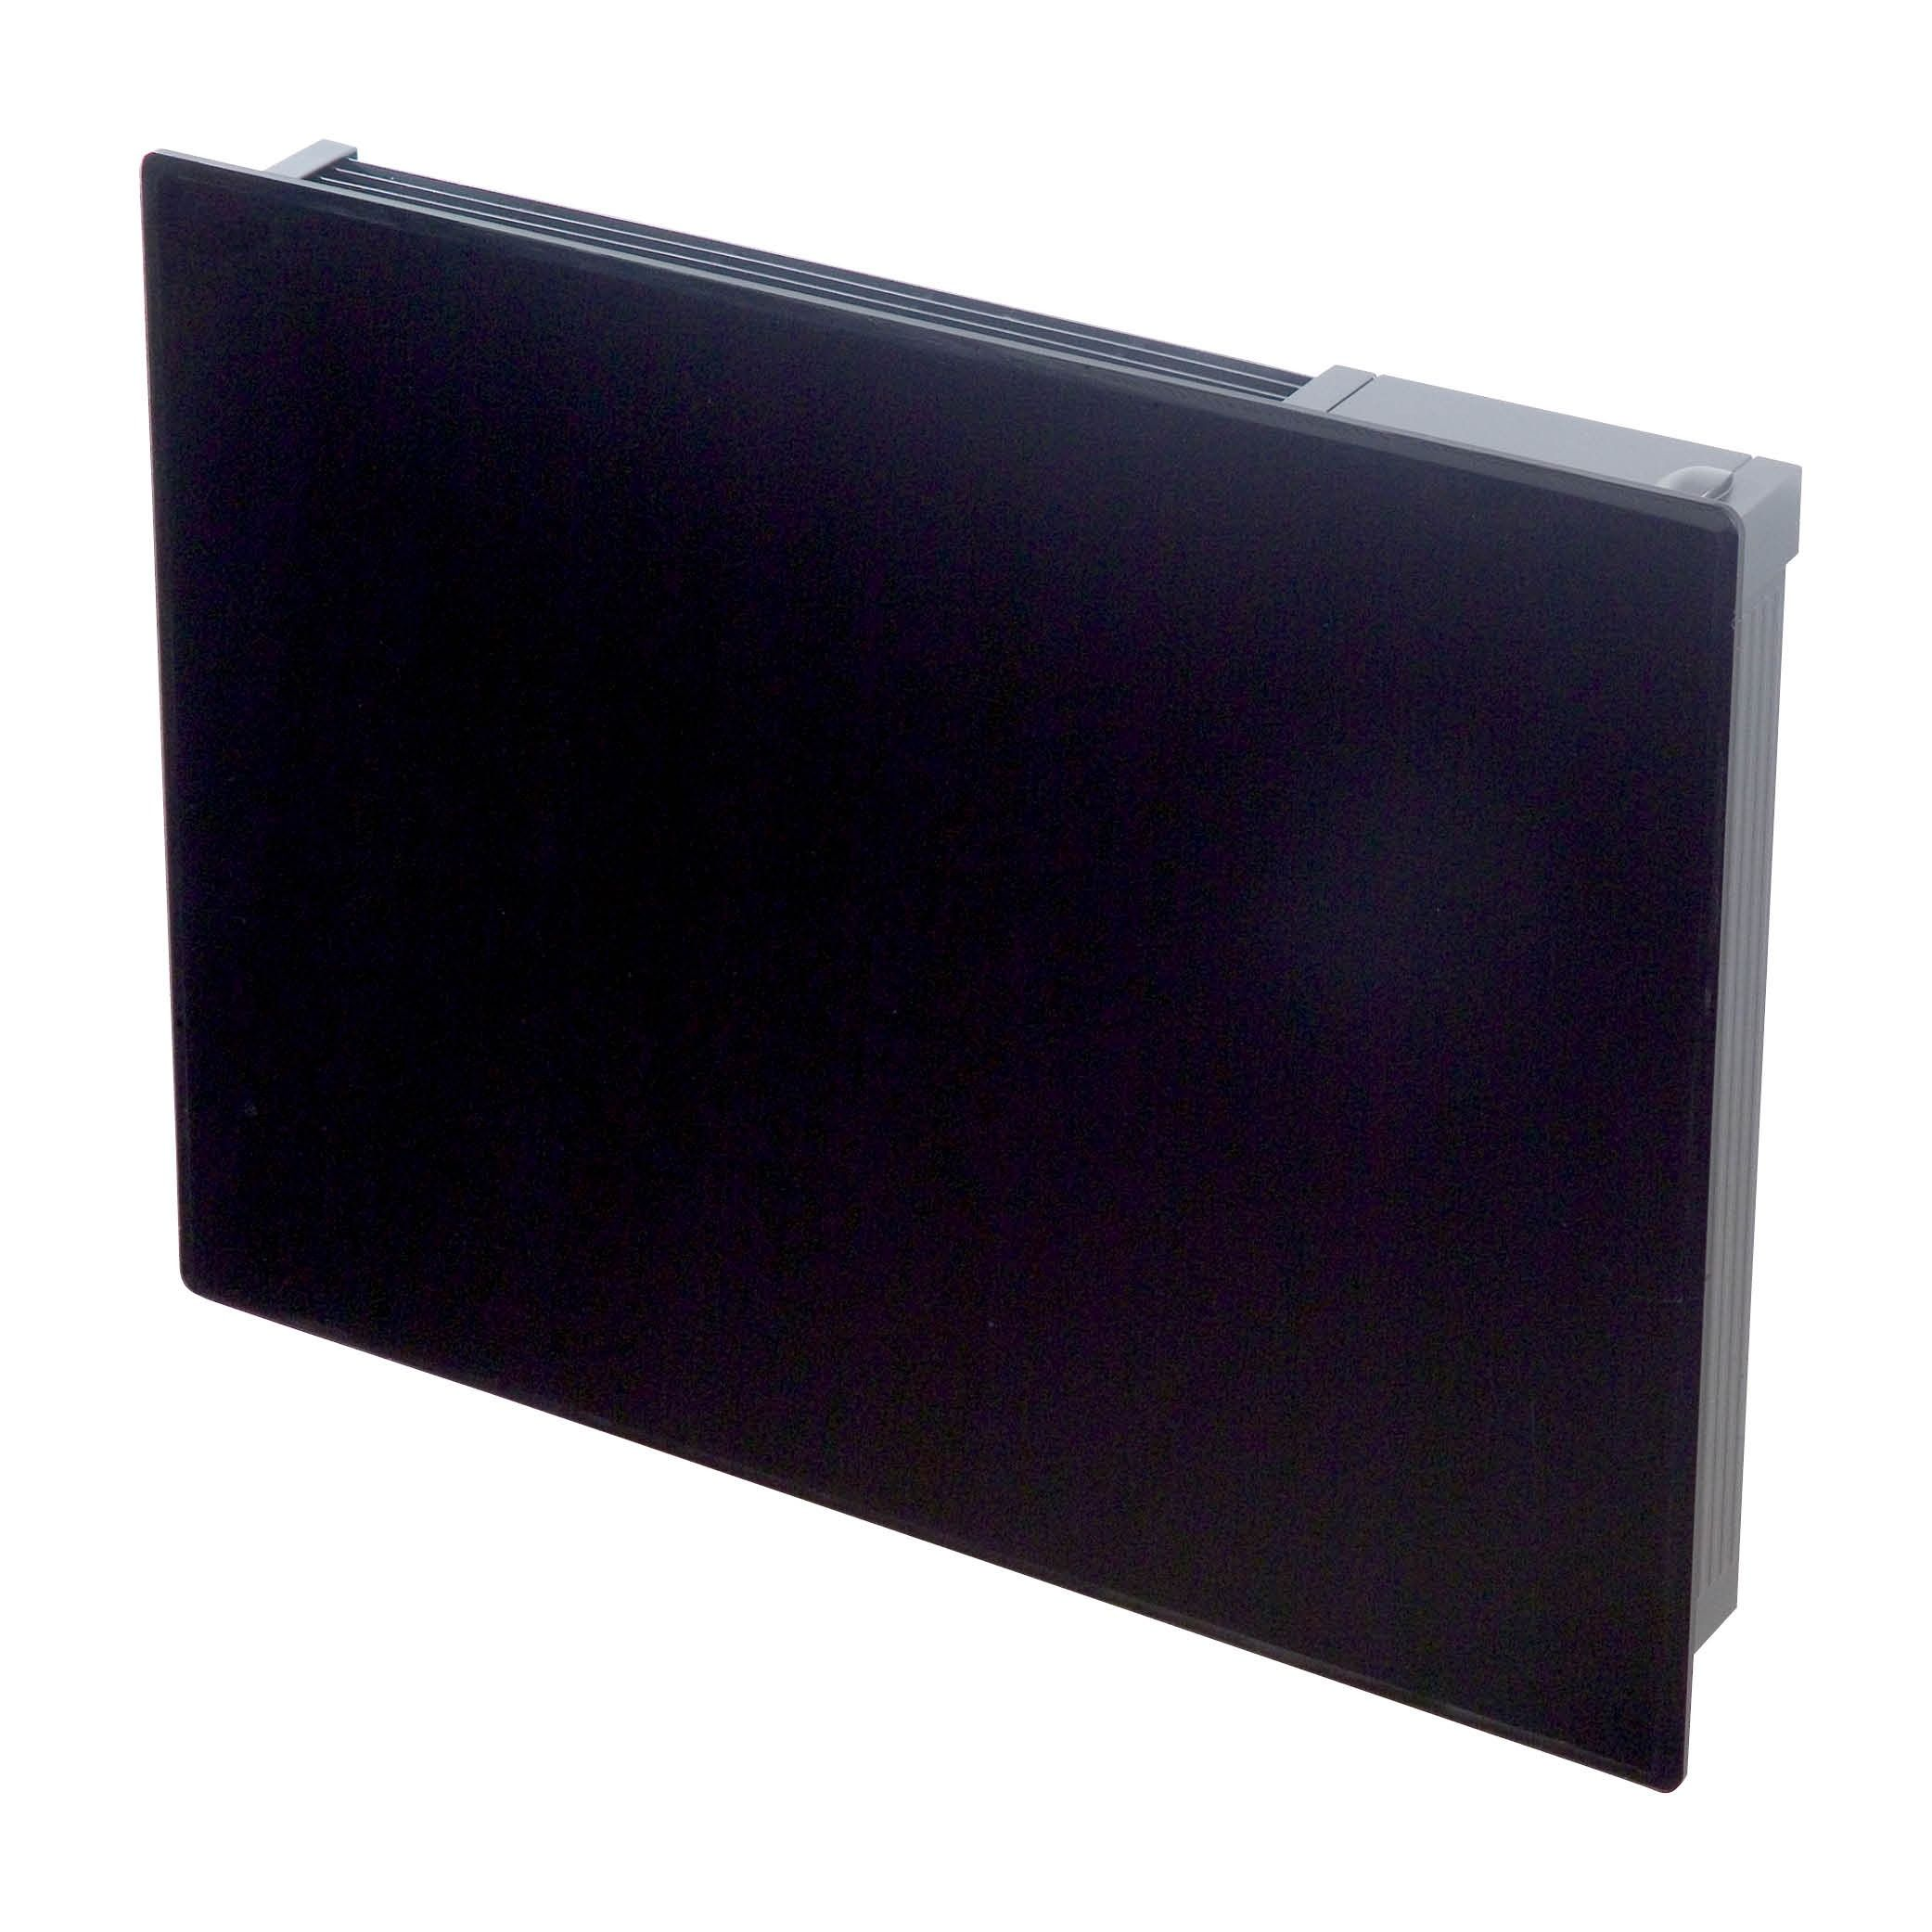 Dimplex Gfp150b 1 5kw Glass Panel Heater Black Free Delivery Best Buy Cyprus Cool Things To Buy Dimplex Glass Panels